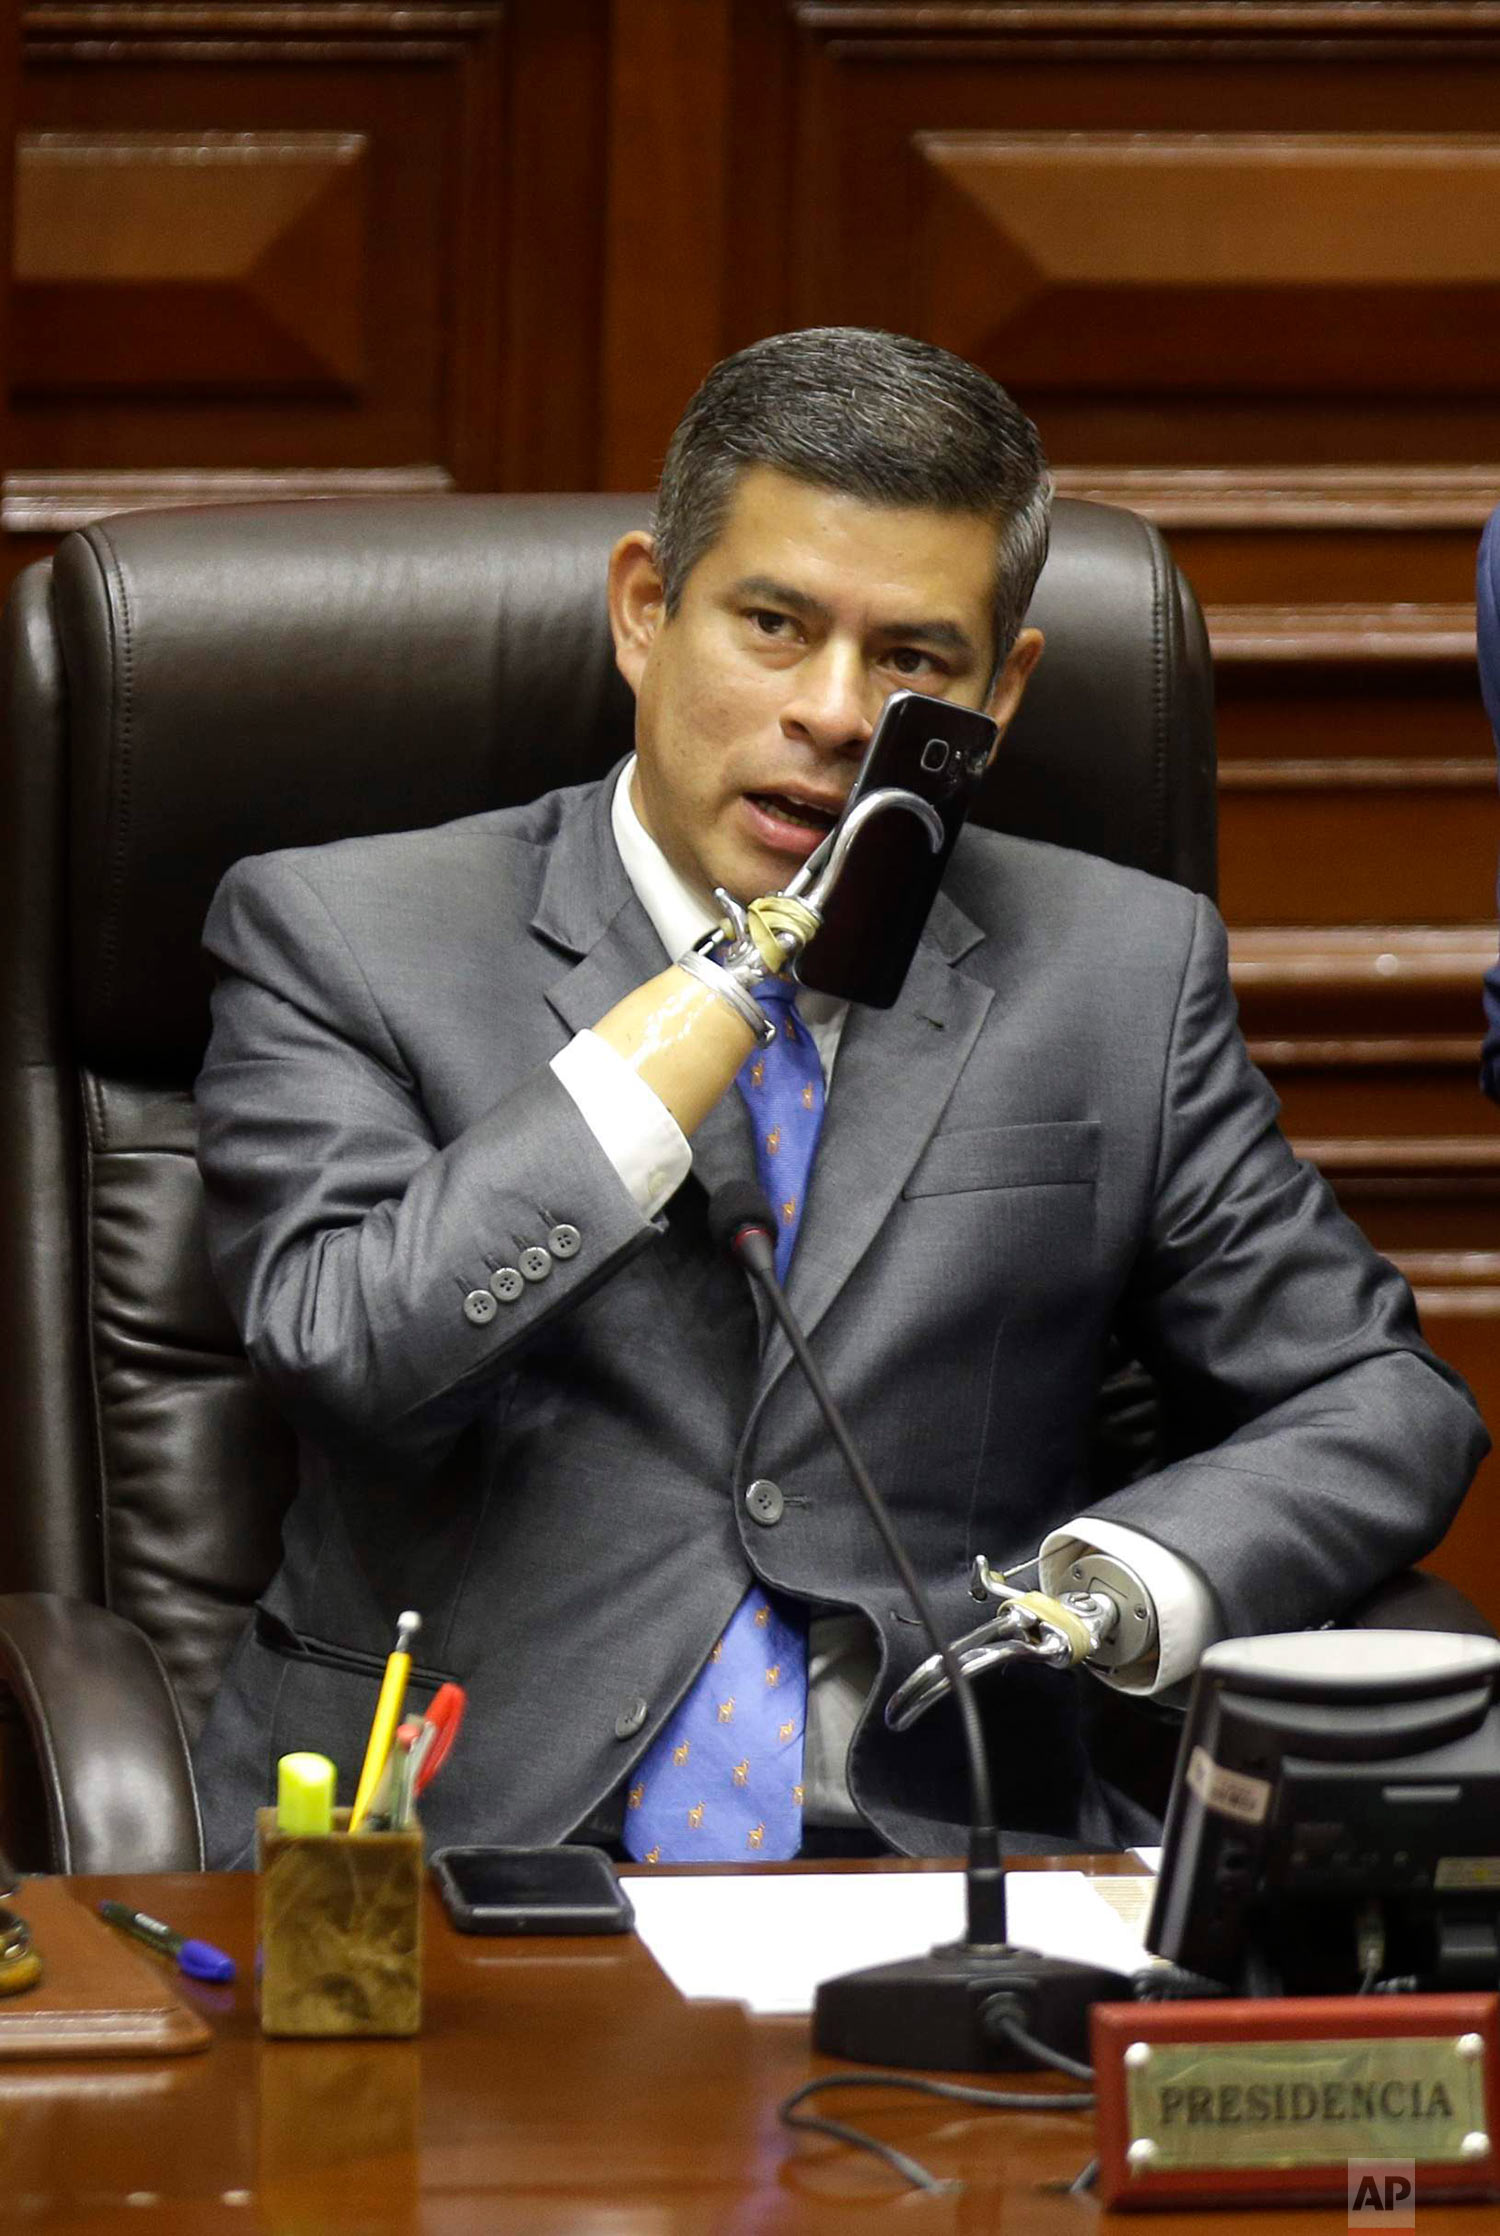 Congress President Luis Galarreta speaks on his cellphone before the discussion in congress about the resignation of Peru's President Pedro Pablo Kuczynski, in Lima, Peru, March 22, 2018. Peru's congress is gearing up to consider whether or not to accept Kuczynski's resignation following the release of several videos appearing to show allies offering state contracts in exchange for votes against his pending impeachment. (AP Photo/Martin Mejia)